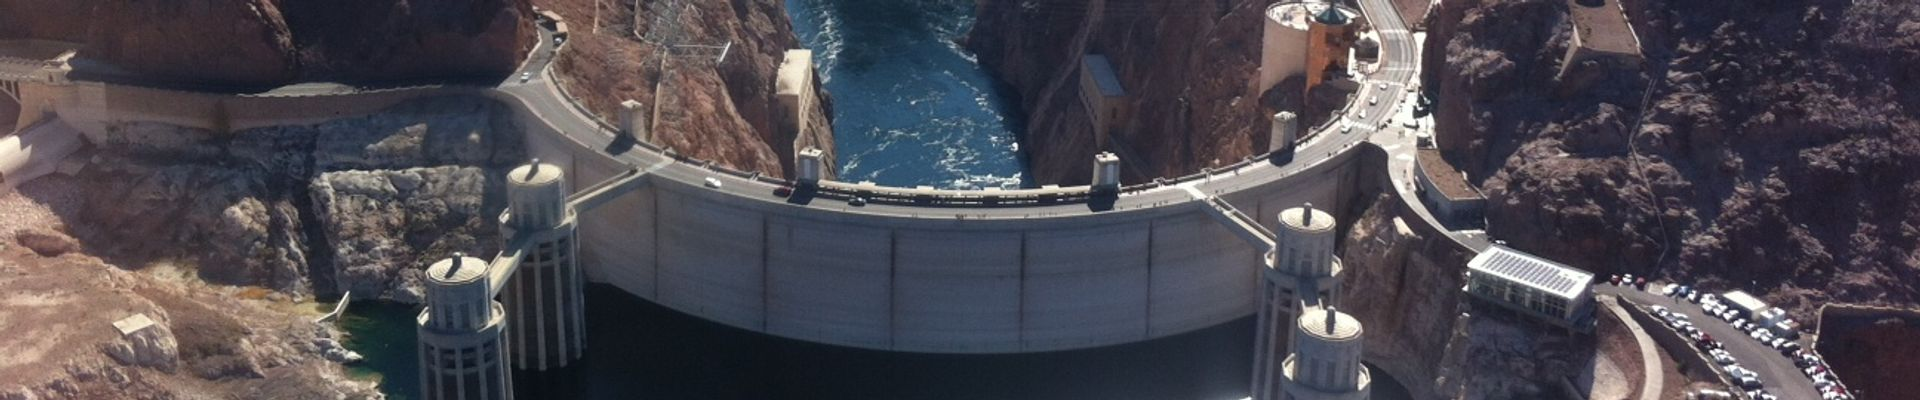 Experience the Hoover Dam on a world-class bus tour from Las Vegas with Papillon